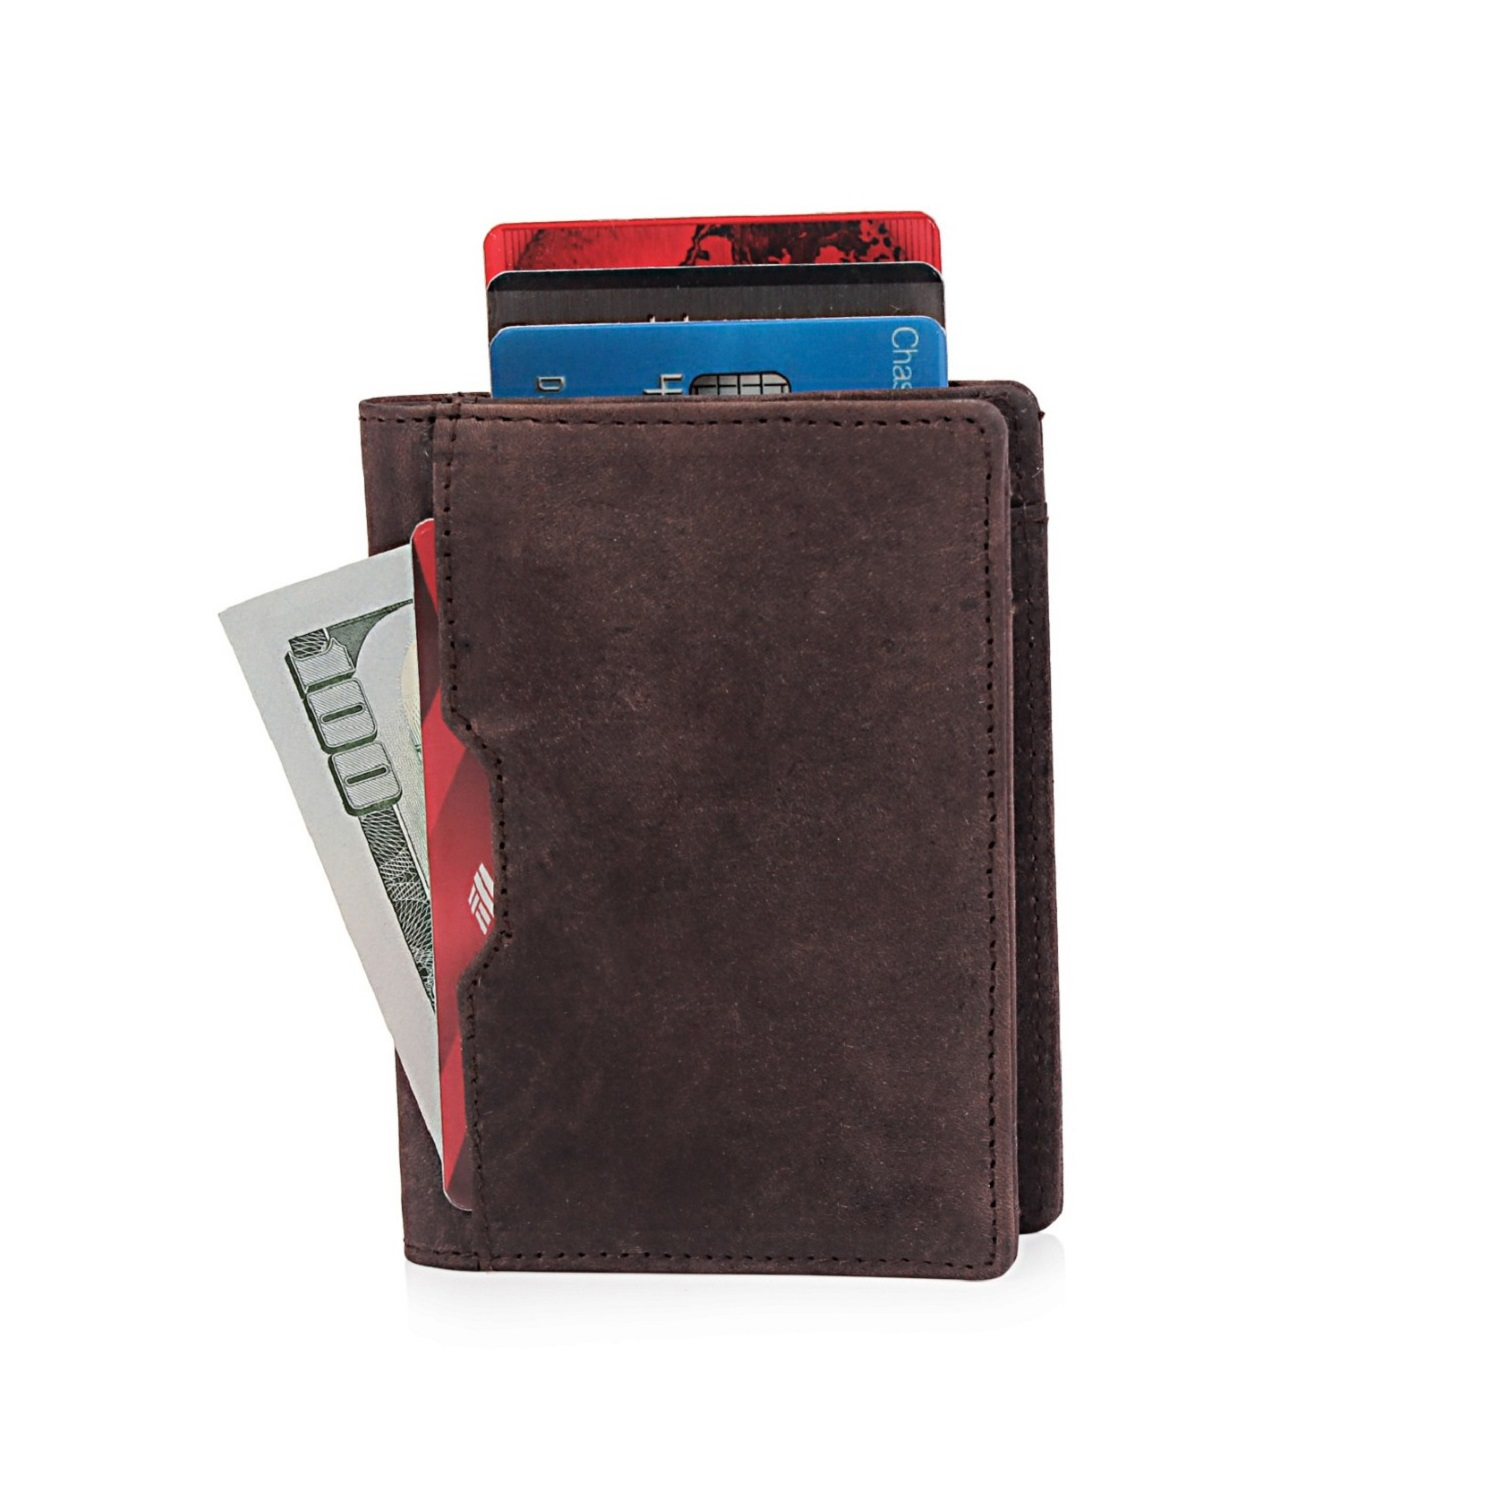 Leather Card Holder Wallet Manufacturers In Idaho, Card Holder Wallet Suppliers In Idaho, Card Holder Wallet Wholesalers In Idaho, Card Holder Wallet Traders In Idaho